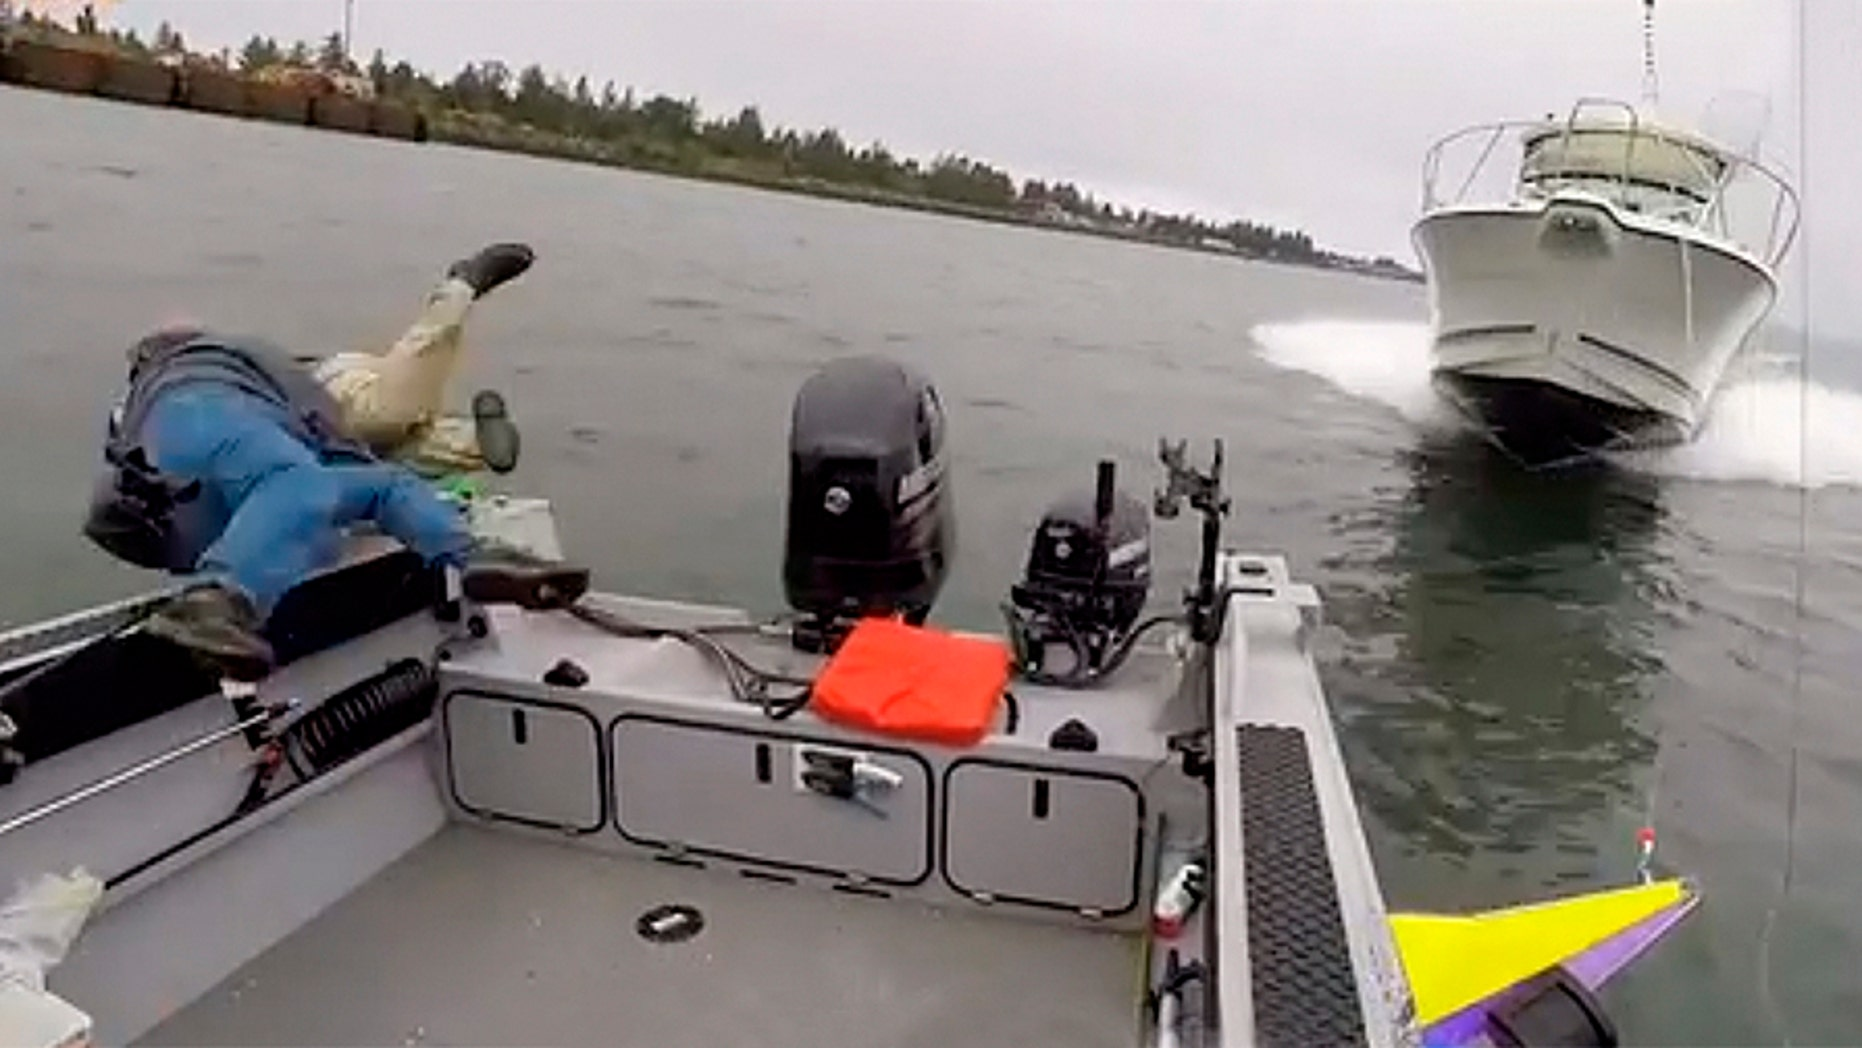 A fisherman who was caught on camera jumping ship into the Columbia River to avoid being struck by an oncoming motorboat is suing the other driver.